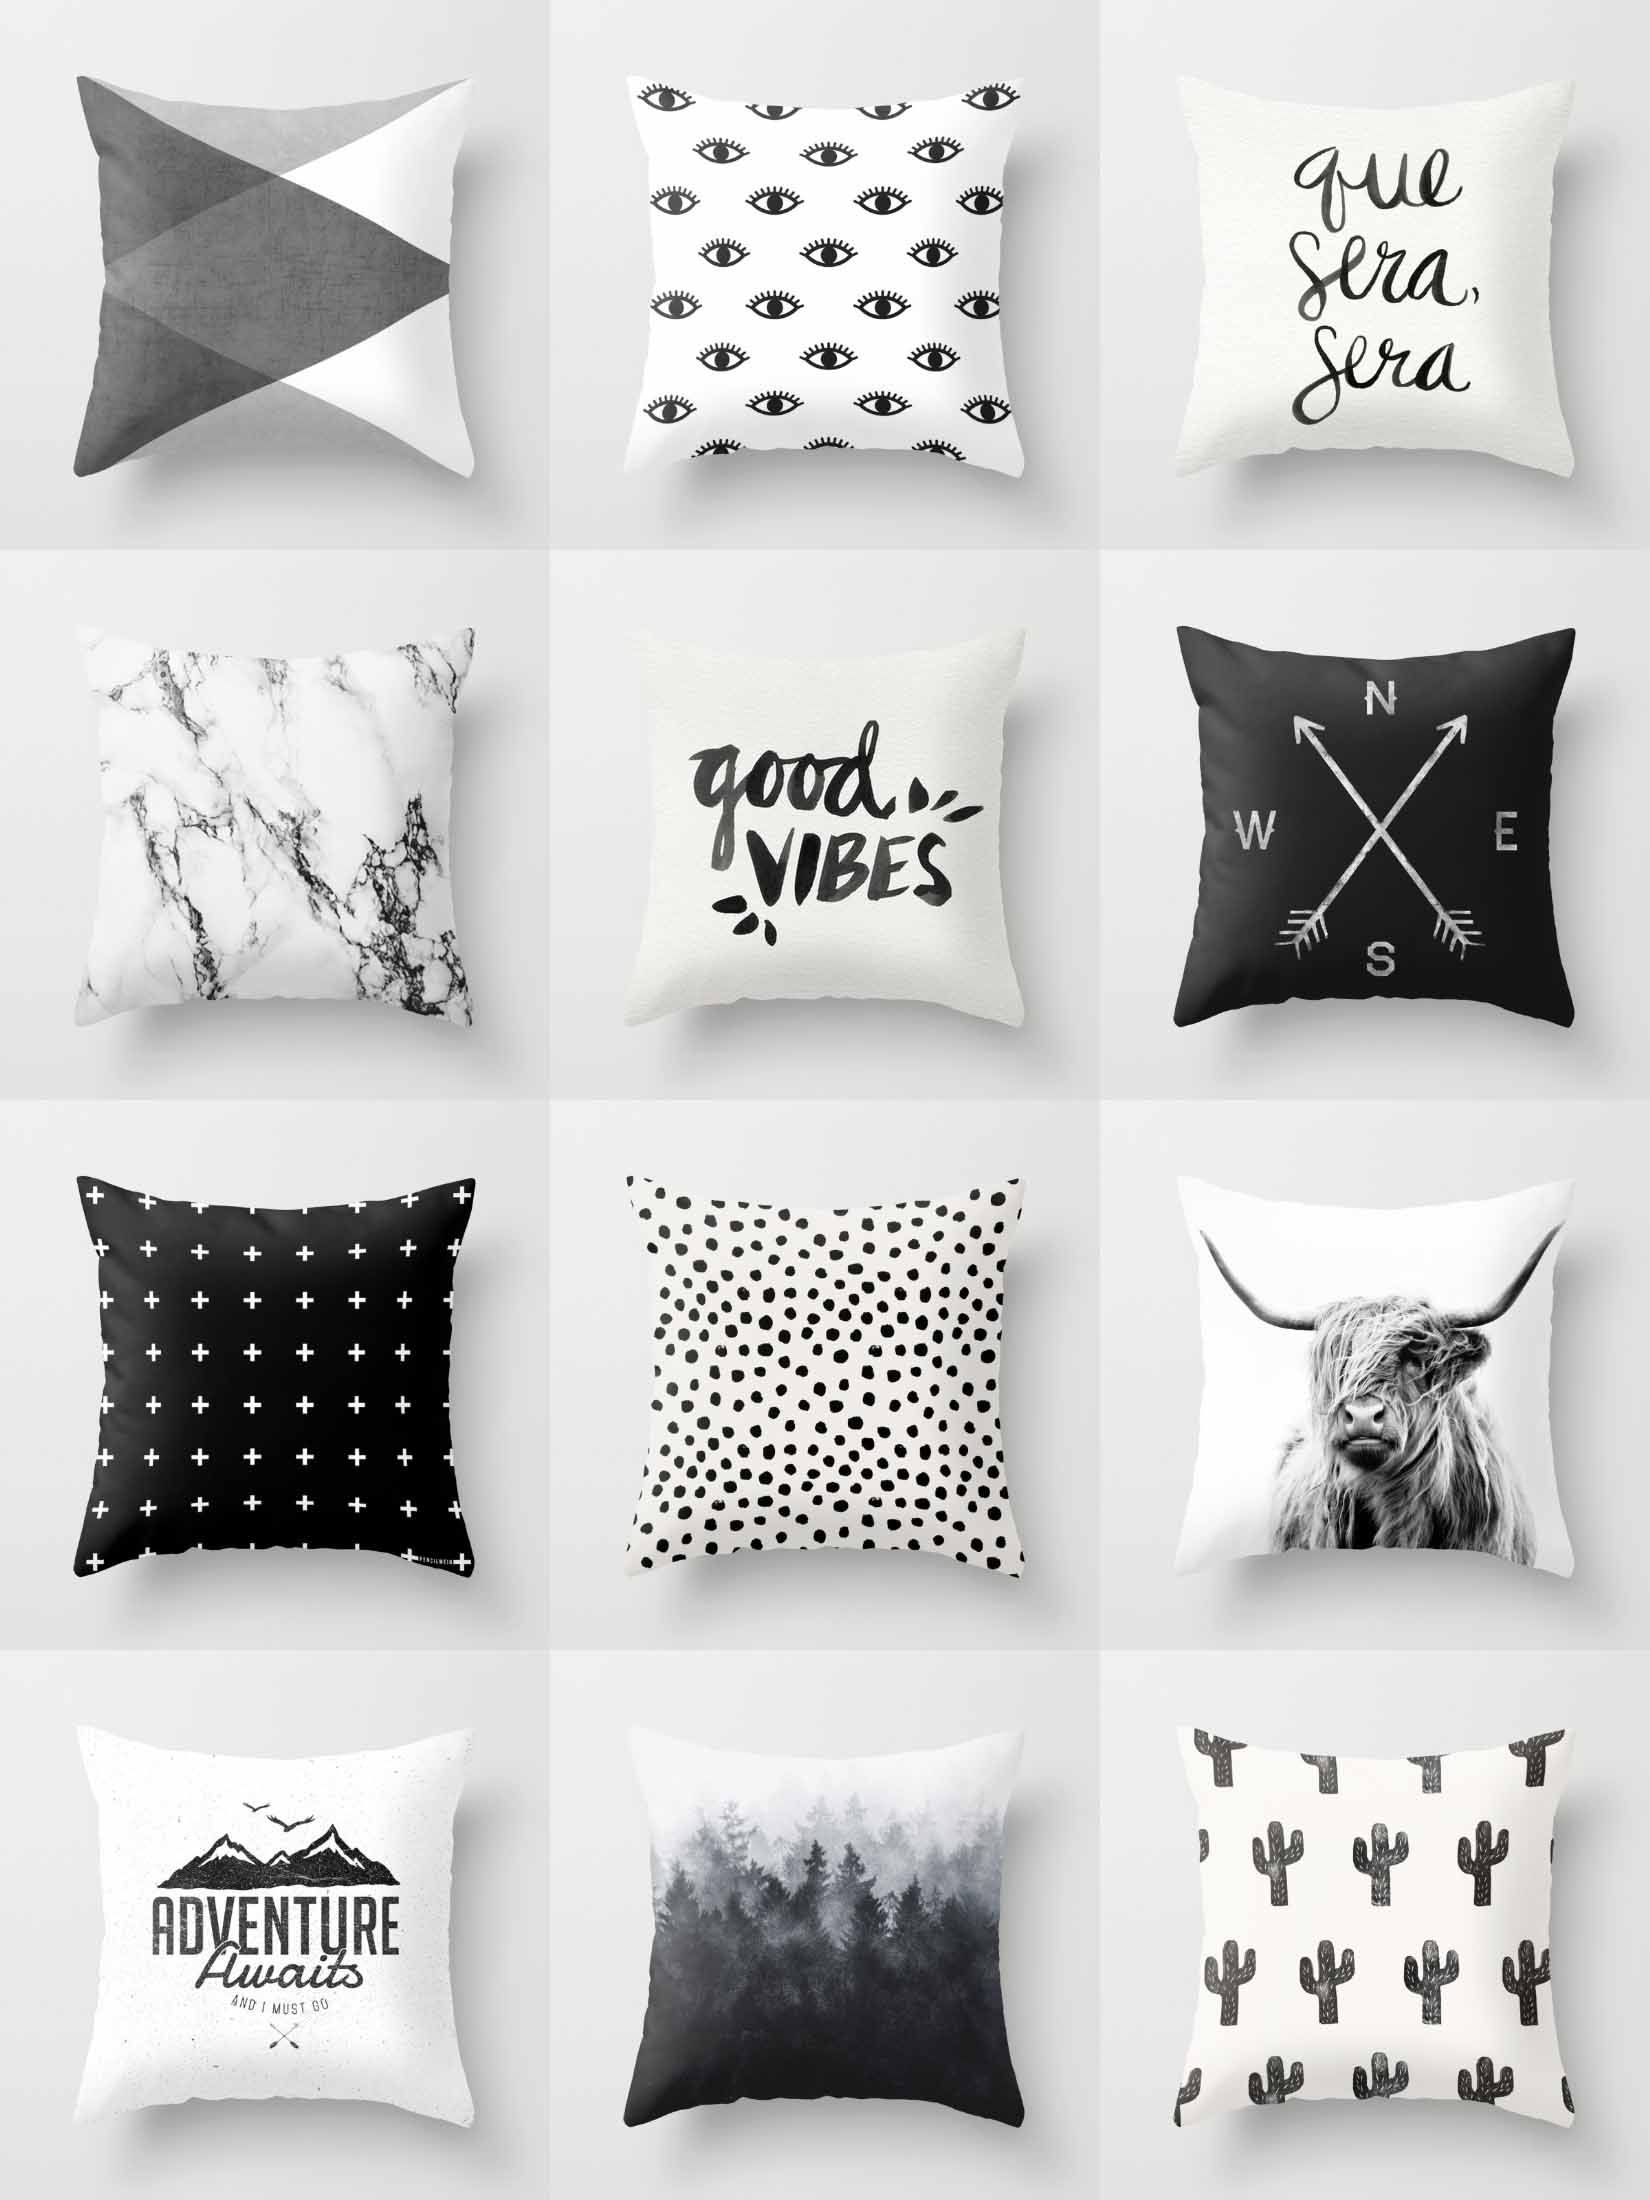 Society6 Black White Throw Pillows Is Home To Hundreds Of Thousands Artists From Around The Globe Uploading And Ing Their Original